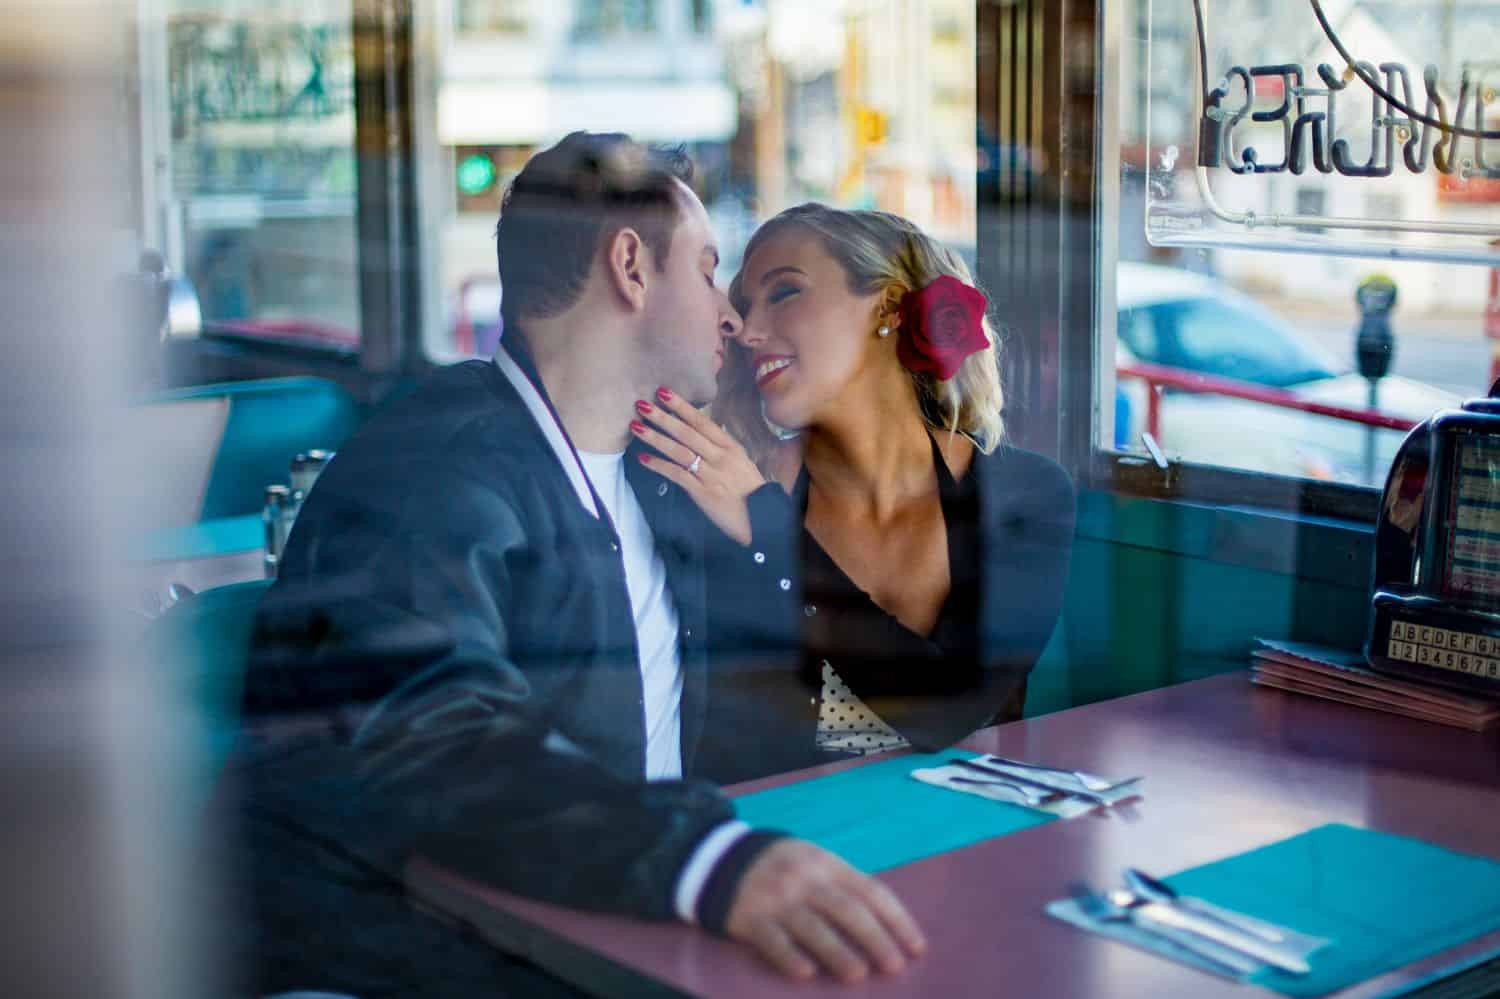 A photo of a couple taken at a restaurant